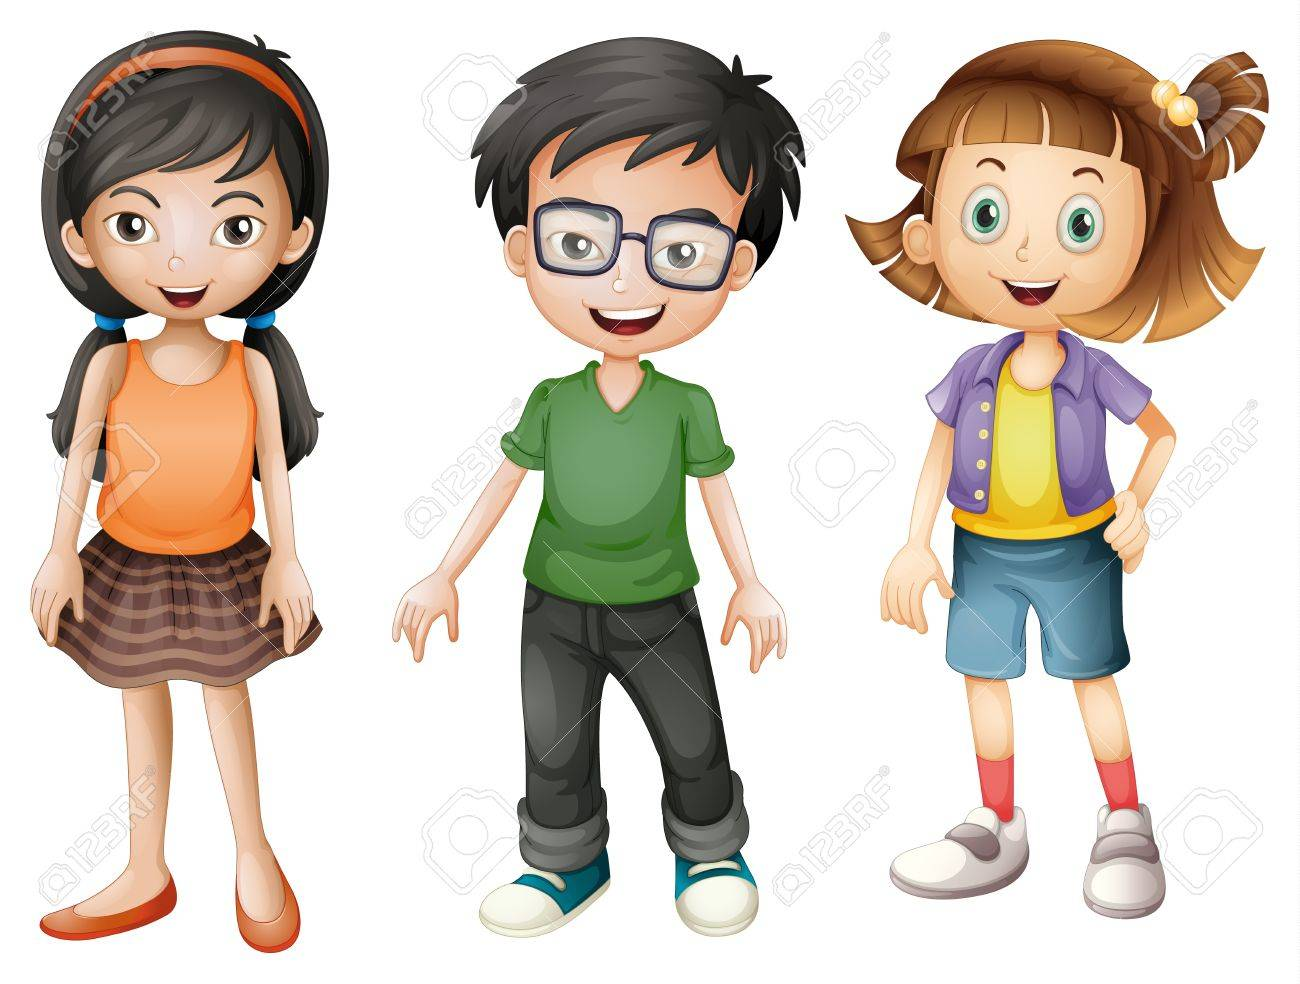 Illustration Of A Boy And Girls On A White Background Royalty Free ...